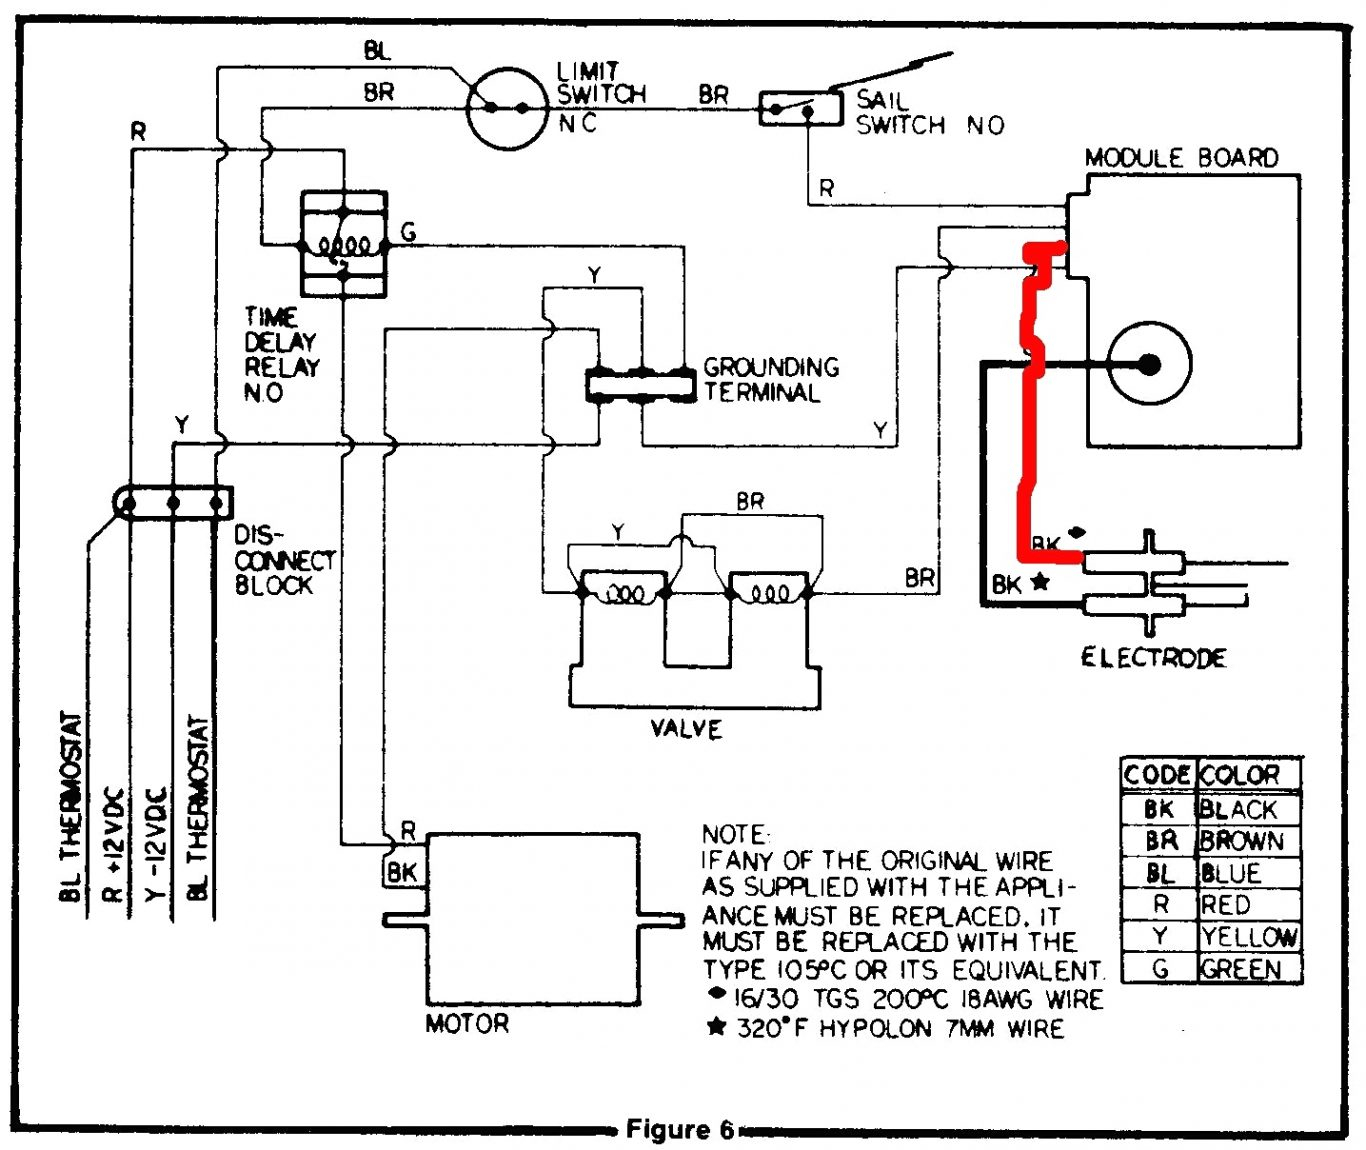 Coleman Mach Thermostat Wiring Diagram Gallery Heat Pump Evcon Inspirational Thermostating